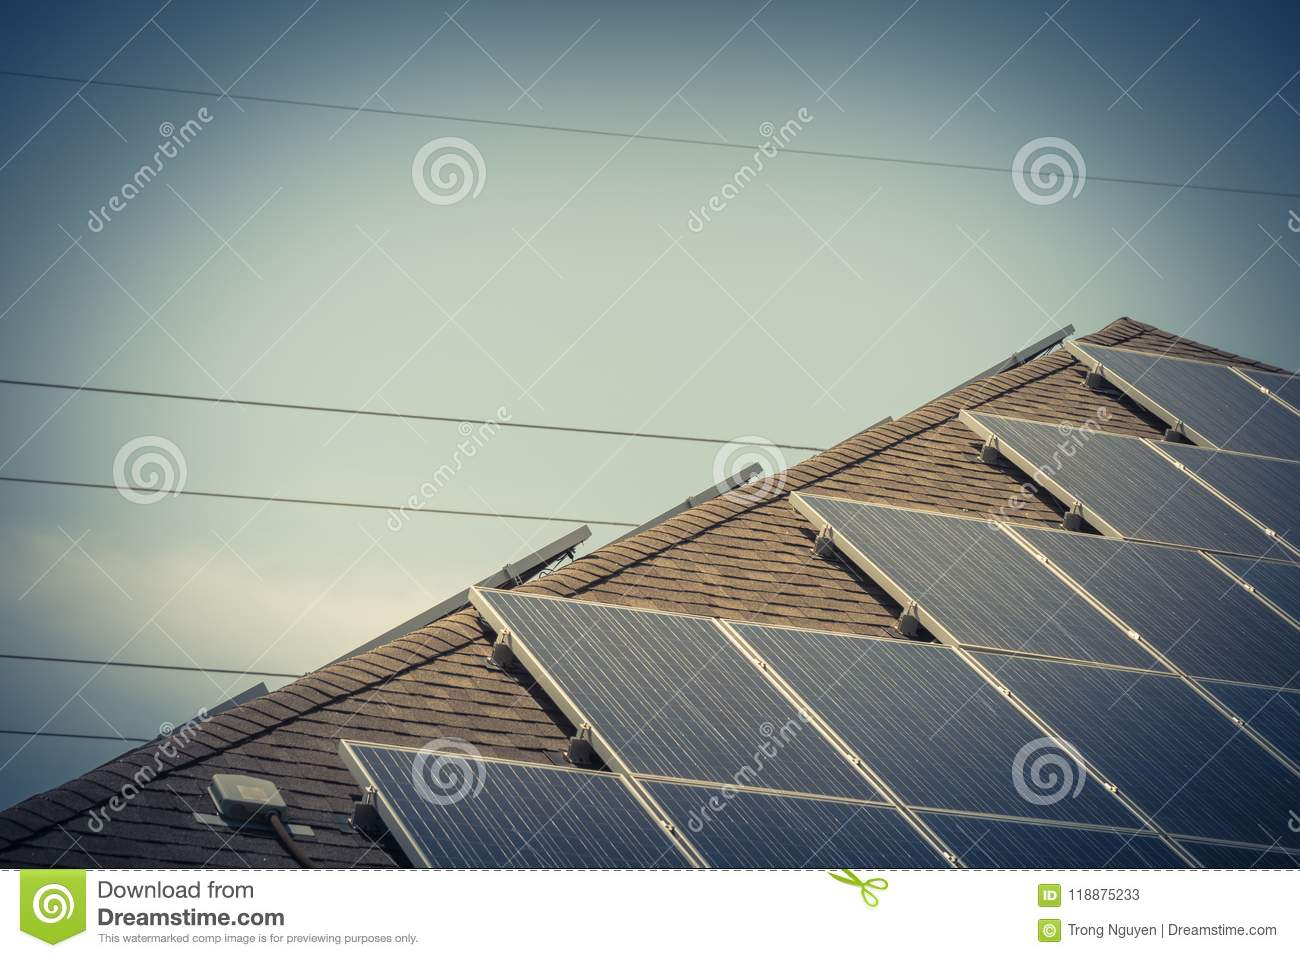 Rooftop Solar Panel System With Junction Box And Electrical Wire Wiring Download Stock Image Of